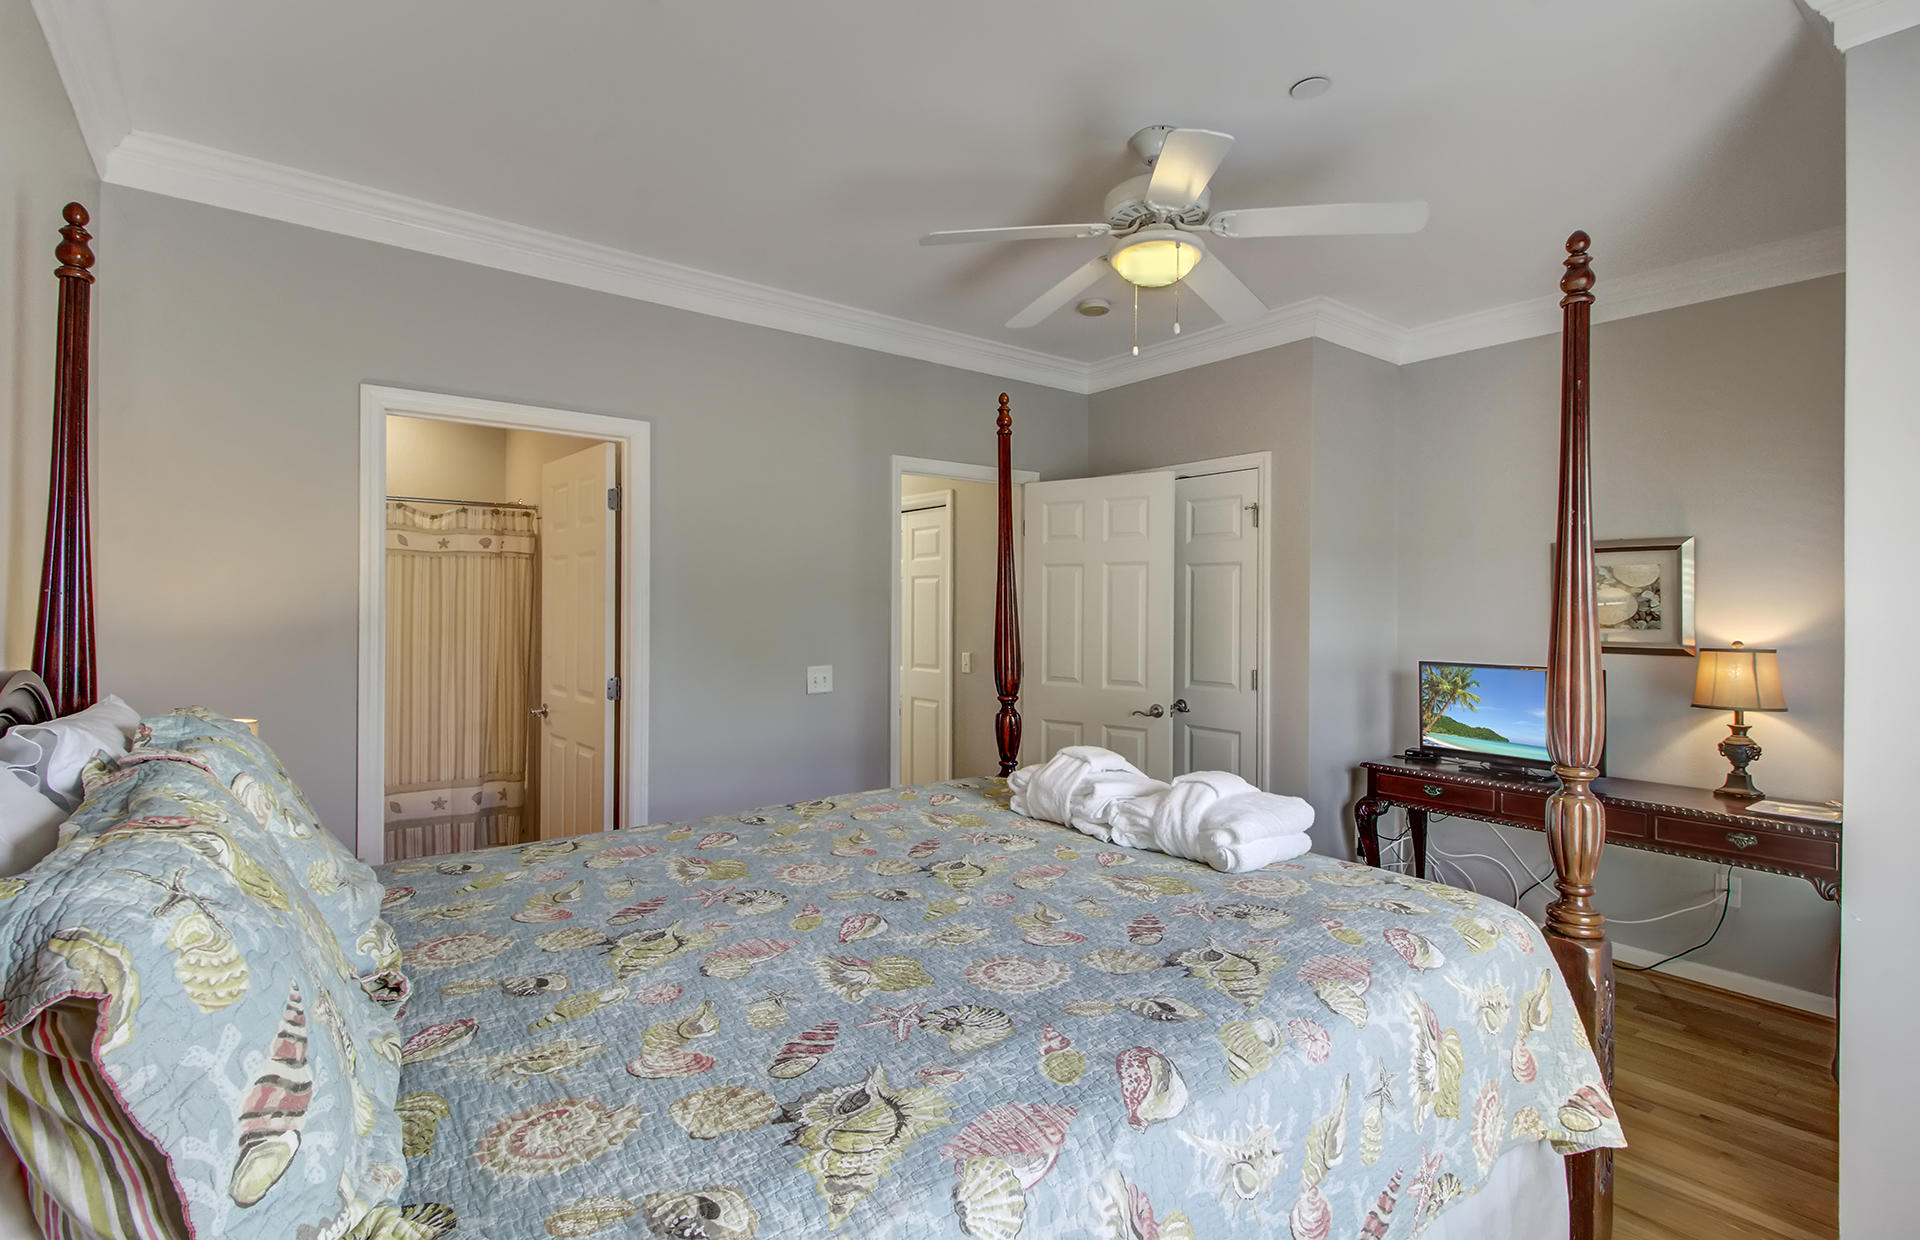 Waters Edge Homes For Sale - 80 2nd, Folly Beach, SC - 44